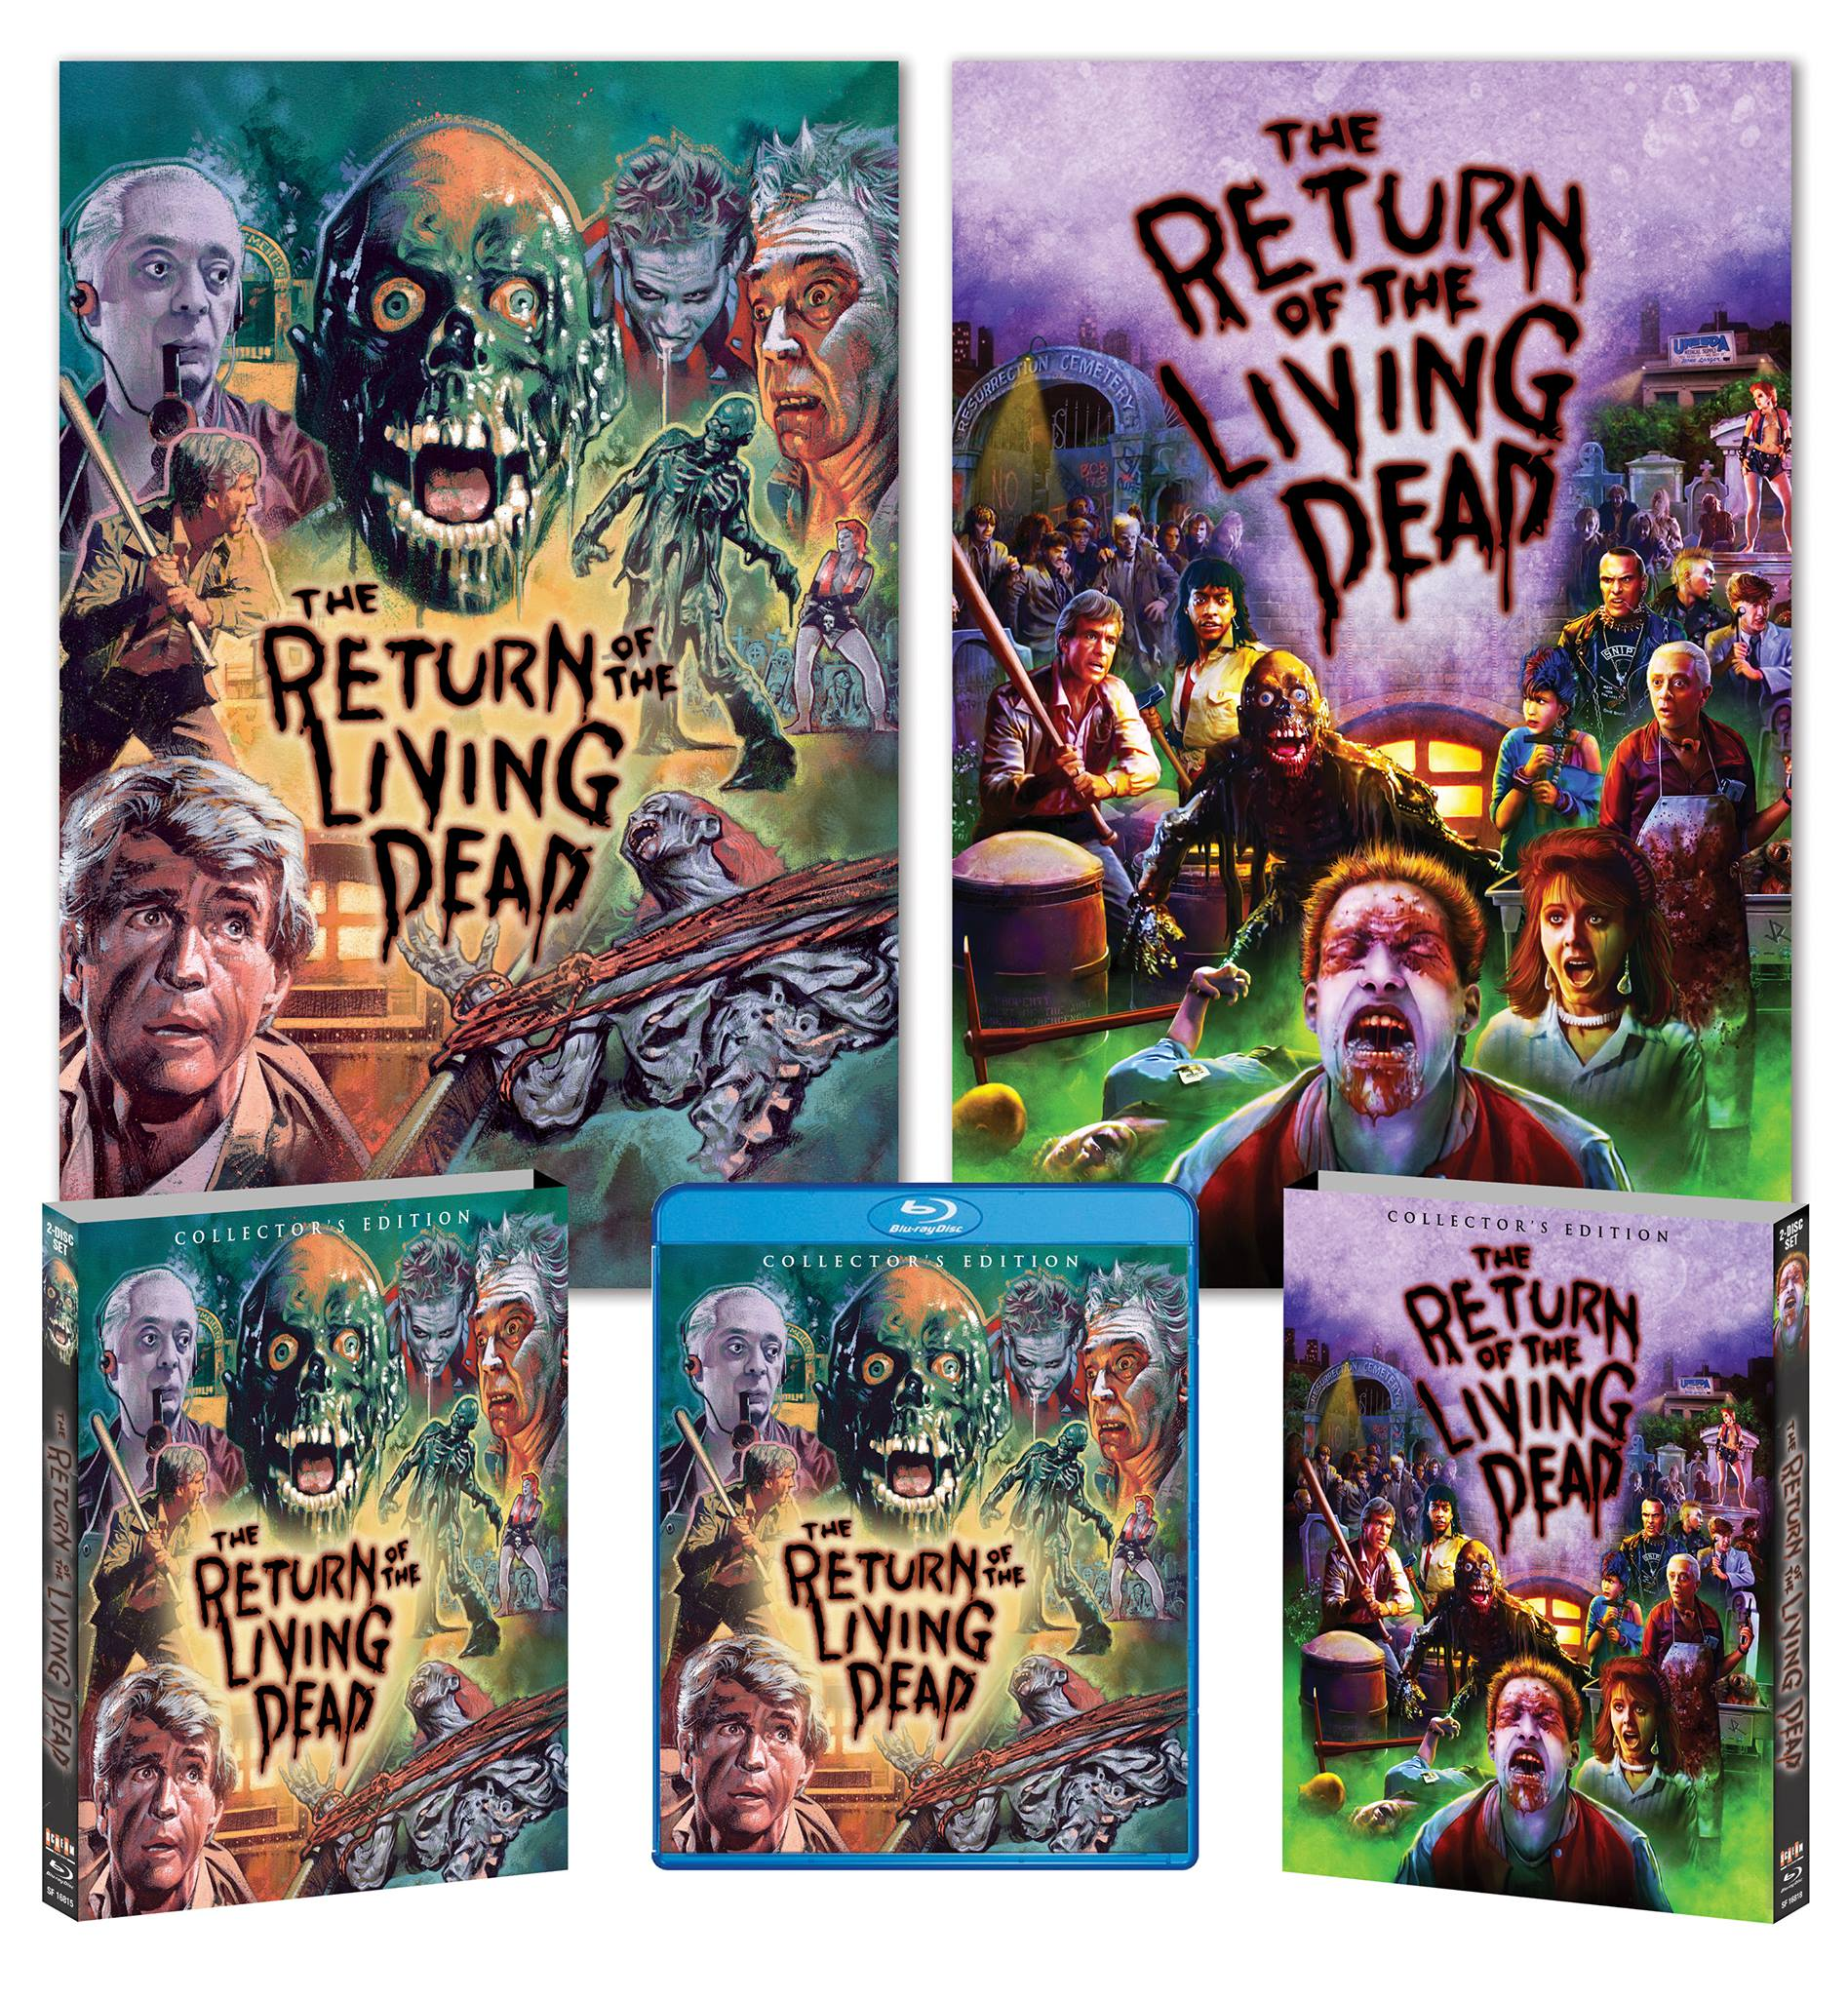 Scream Factory Rolls Out The Details For Their Two Disc Collectors Edition of The Return Of The Living Dead